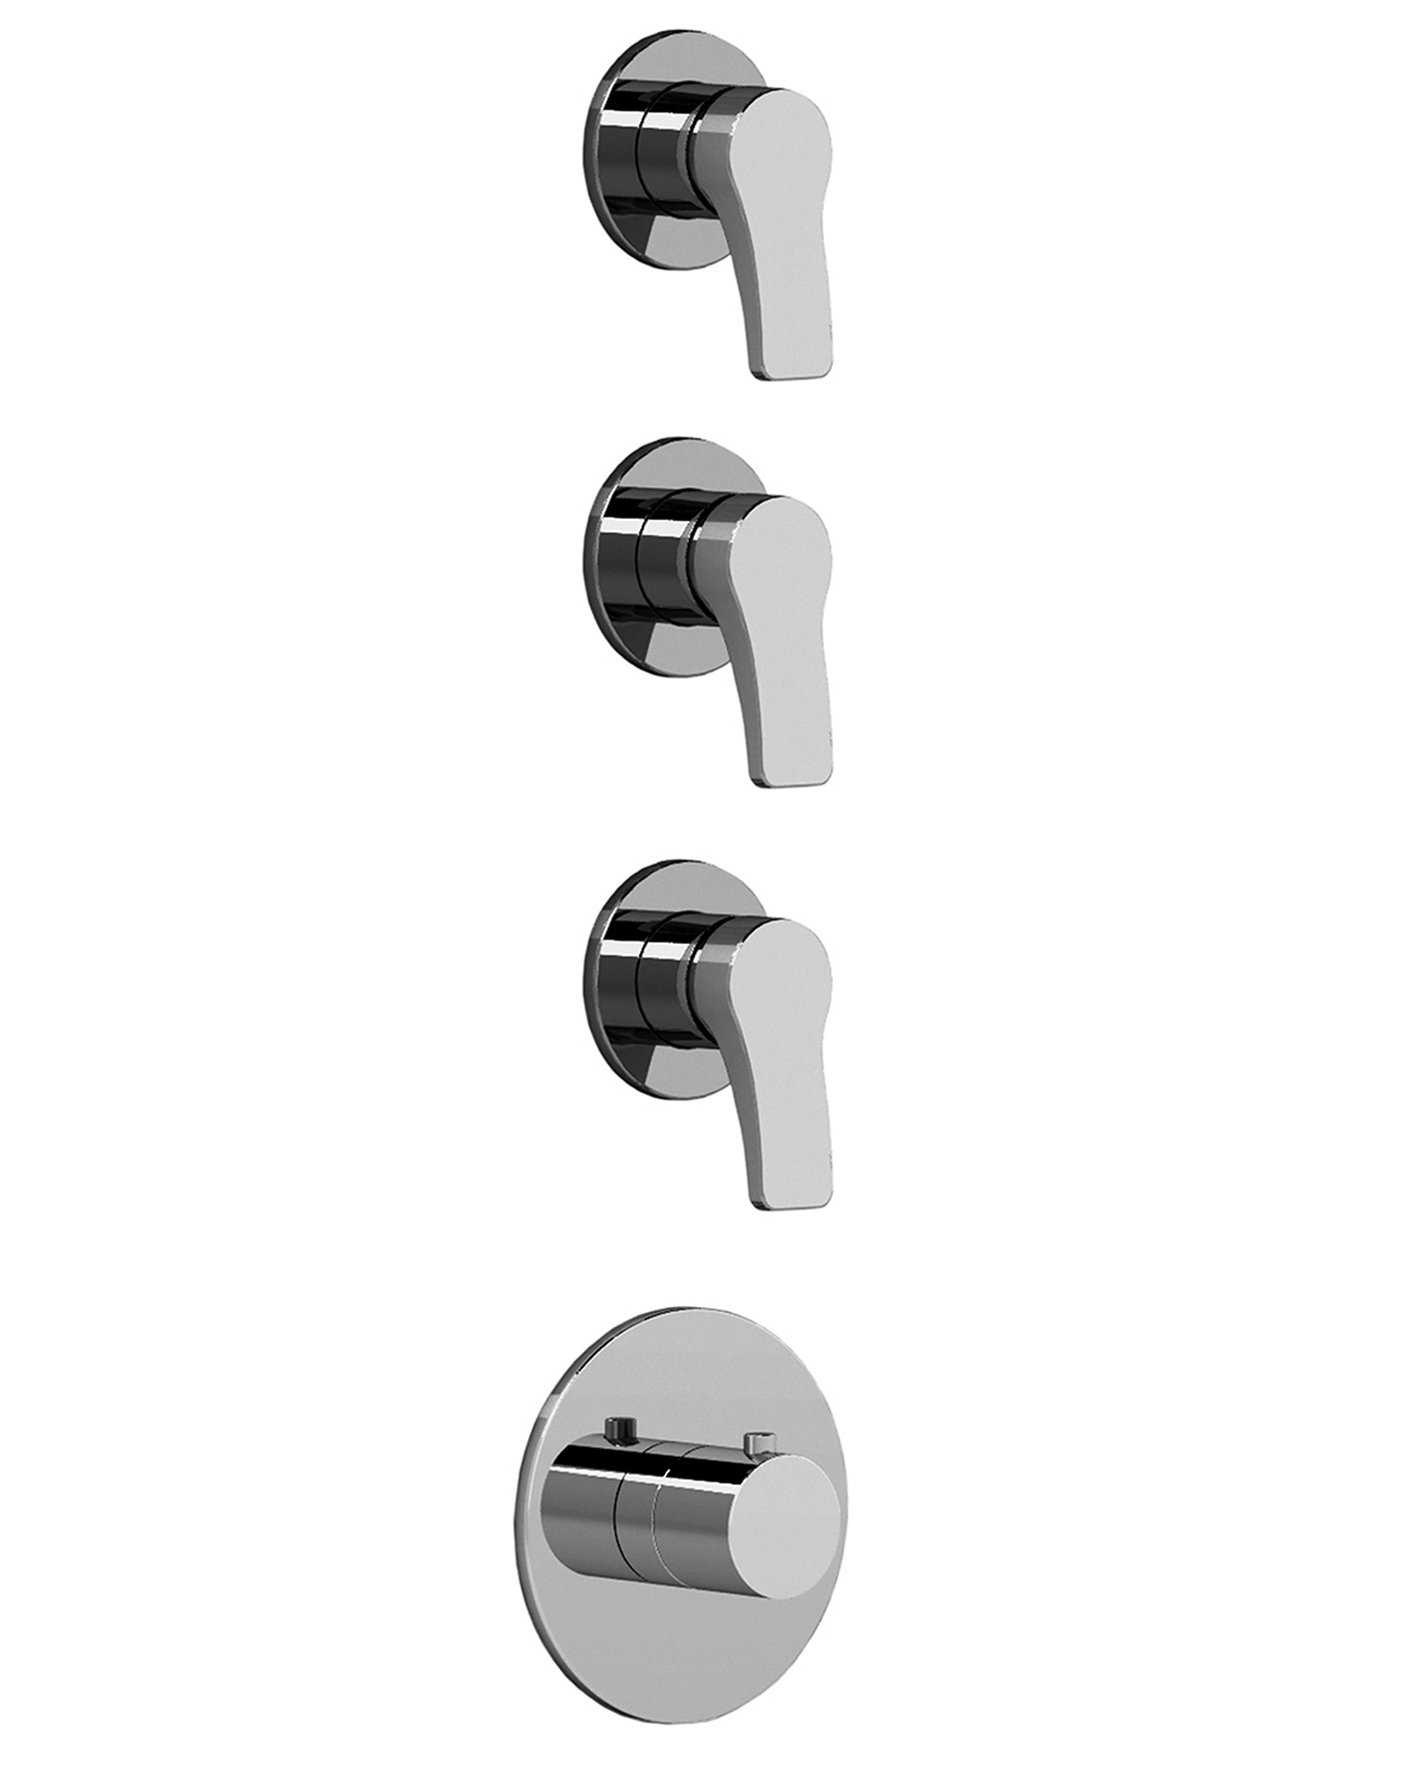 art b303b + a303a lissoni thermostatic shower mixer